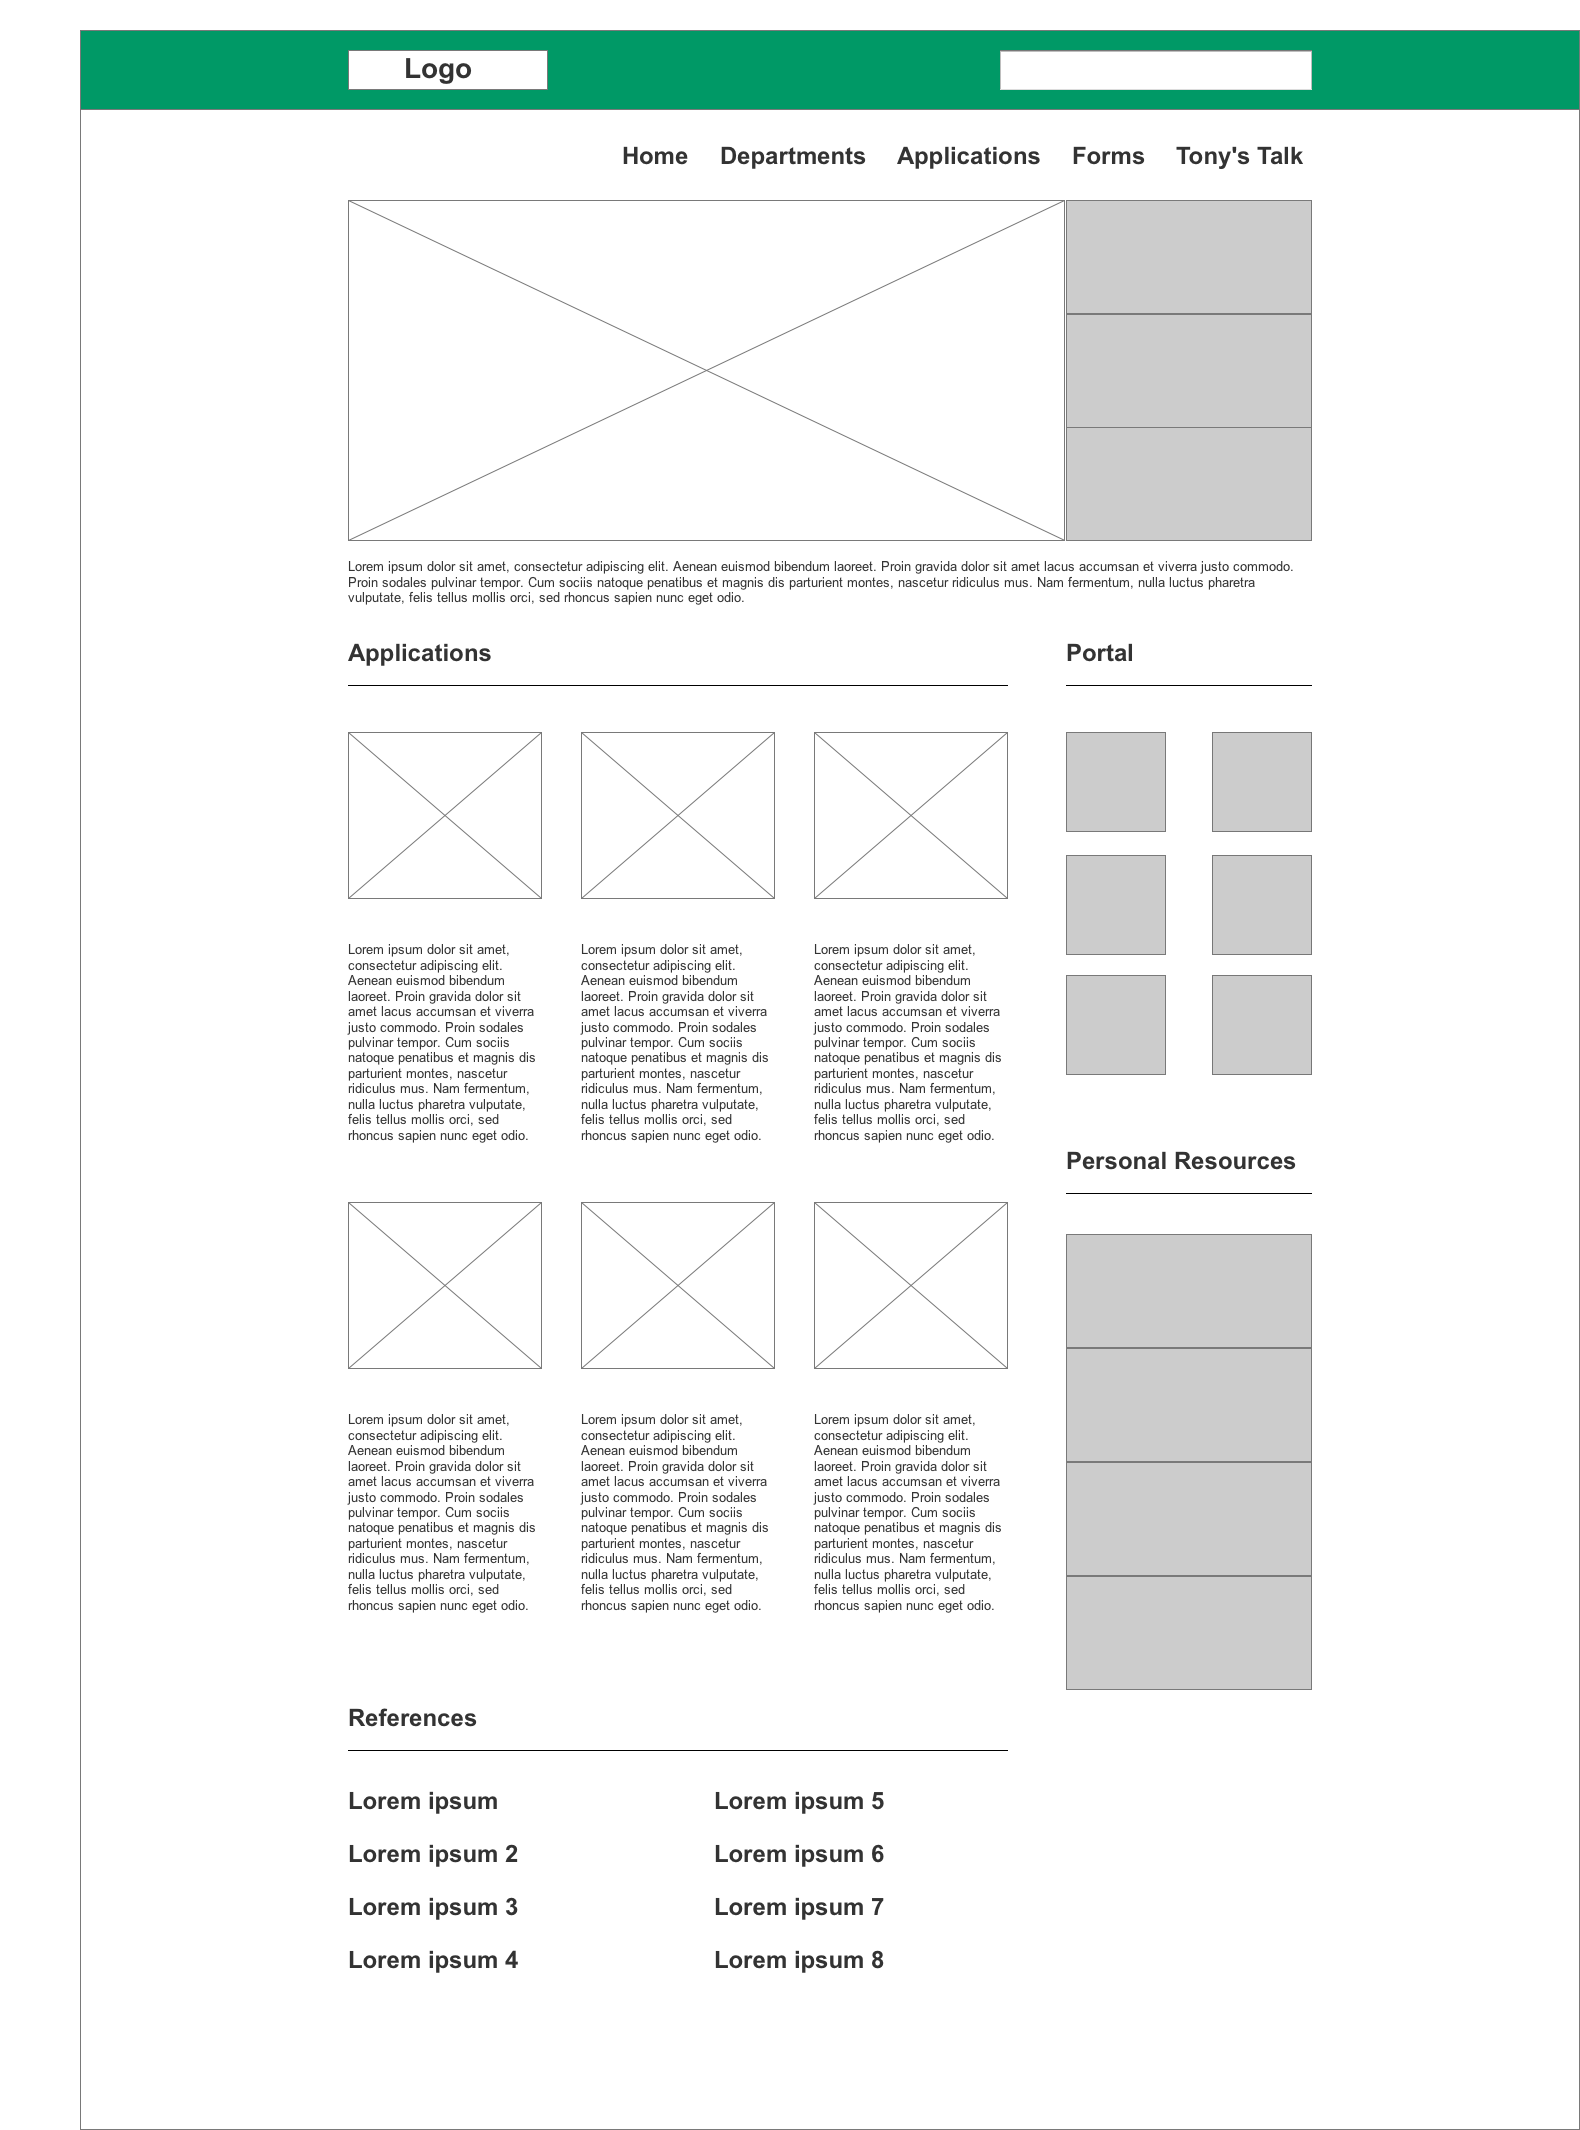 WireFrame-home.png